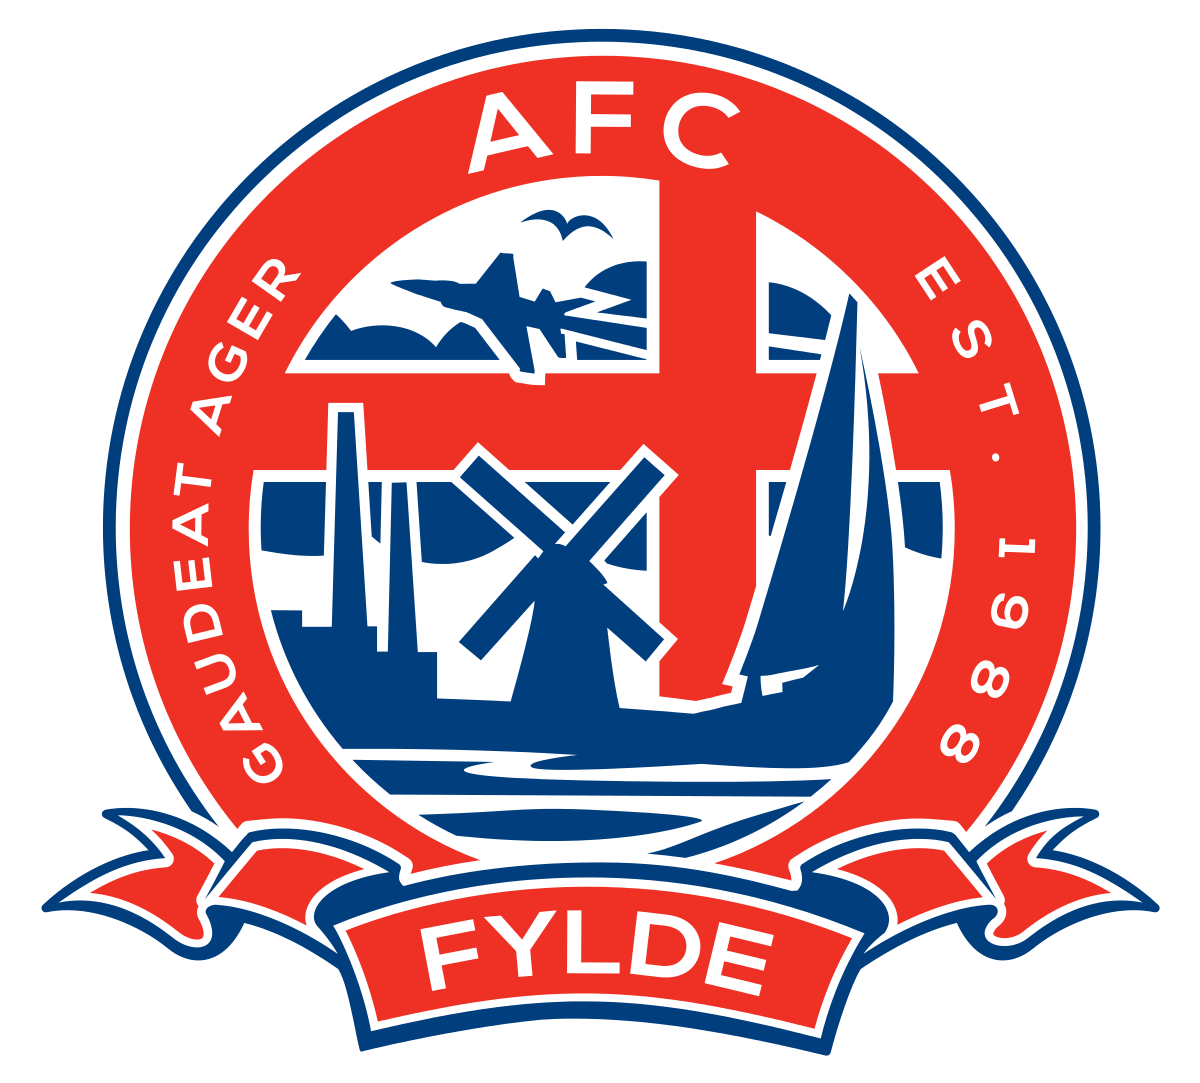 No Insurance Ticket >> NEWS | Ticket & Travel Details For Saturday's Match Vs AFC Fylde - Torquay United